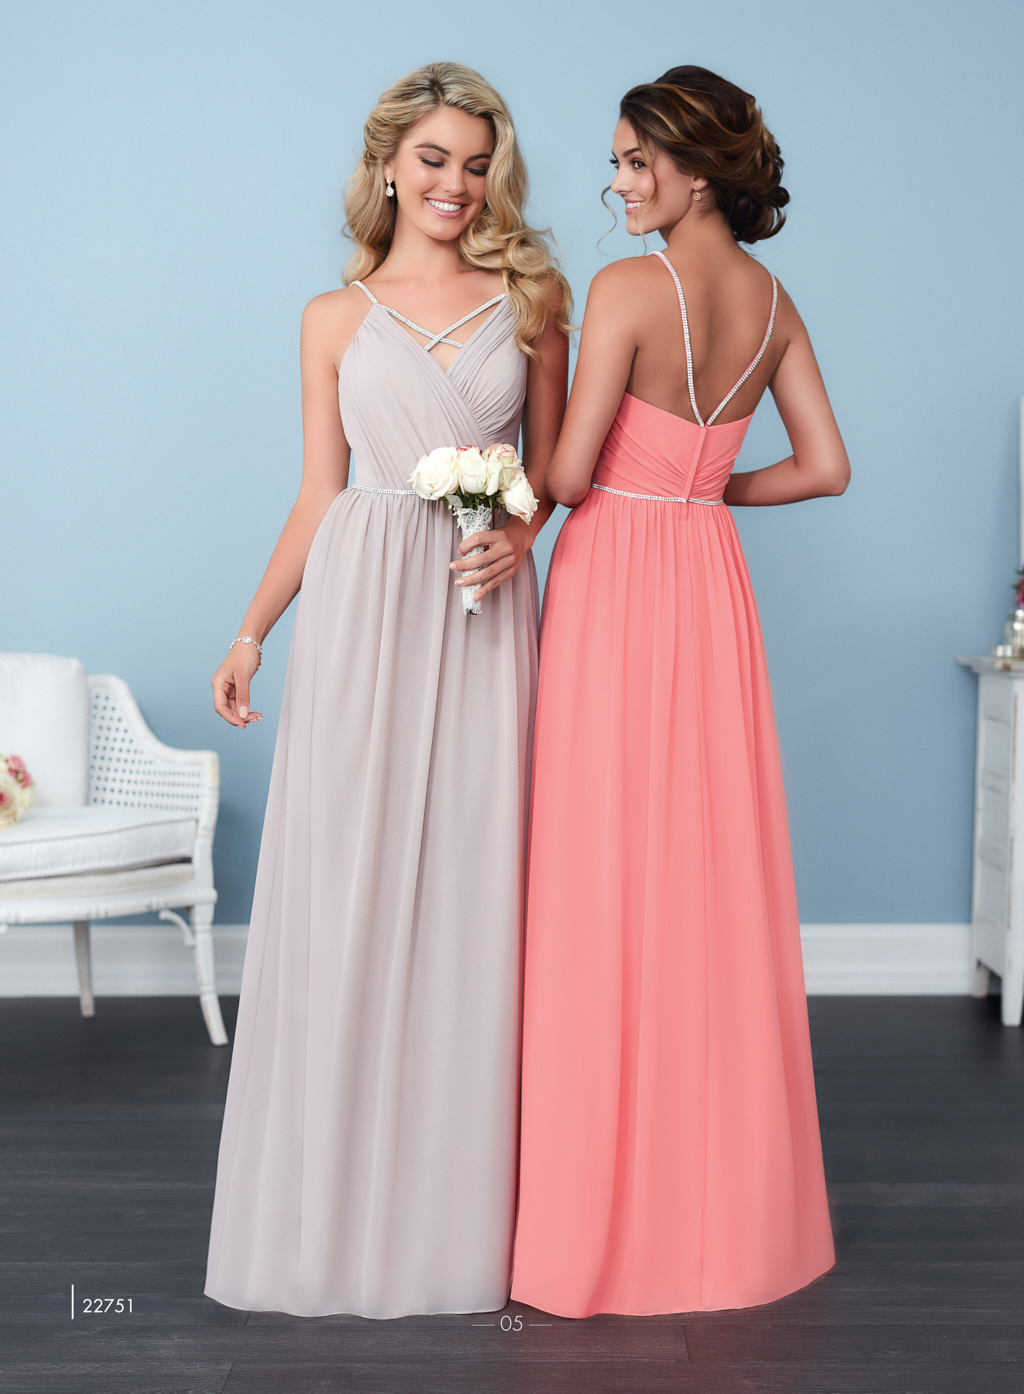 bridesmaid-dresses-sarasota-babies-boutique-40 - Sarasota Wedding ...